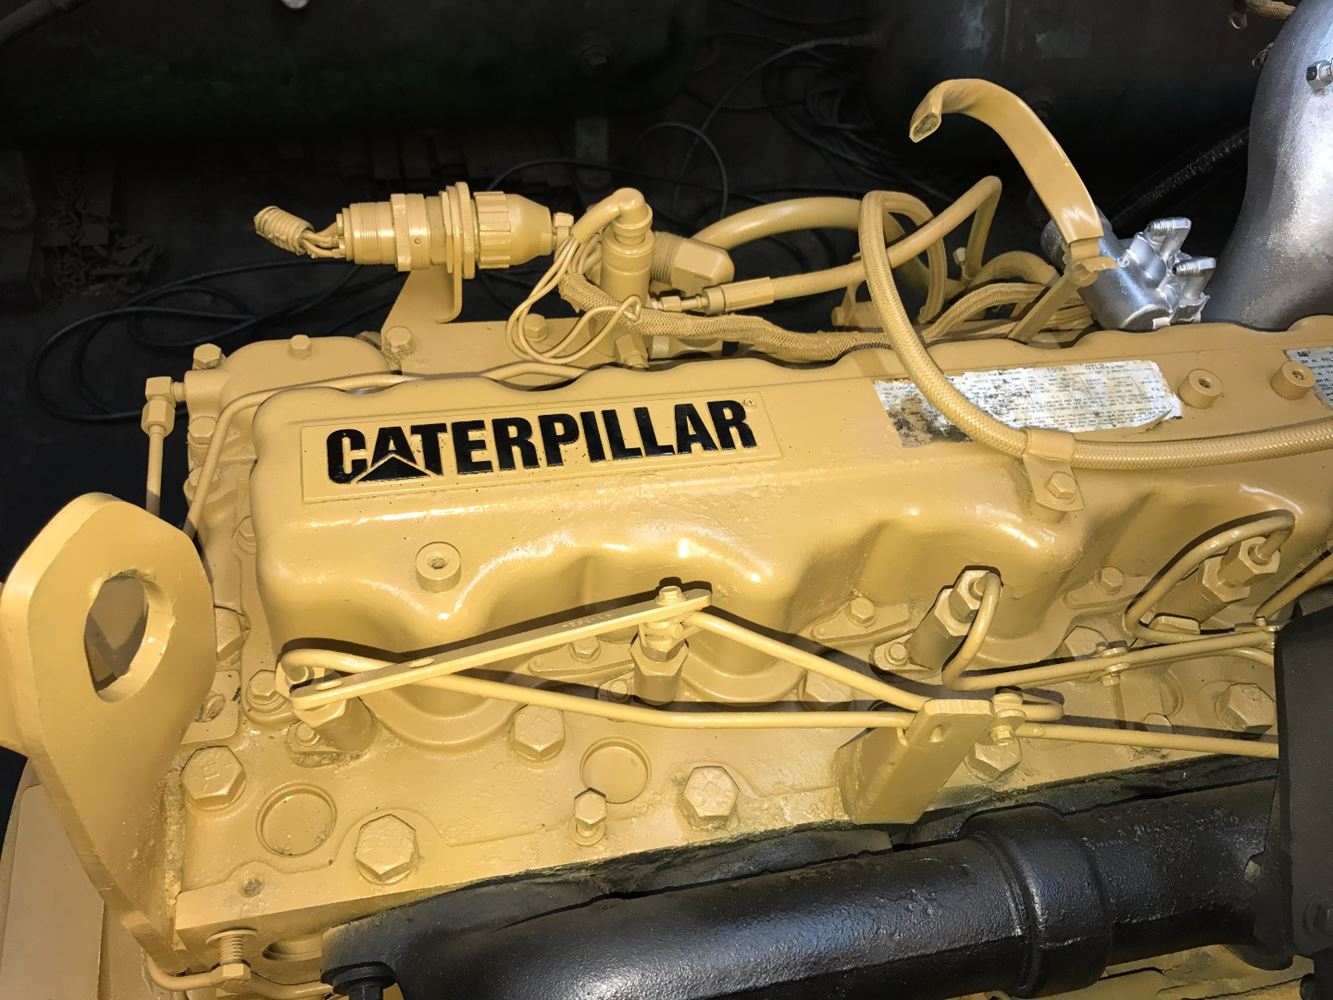 1998 Caterpillar 3306 Stock 1120 Engine Assys Tpi Cat Wiring Harness 24 May 2017 Image Subject To Change